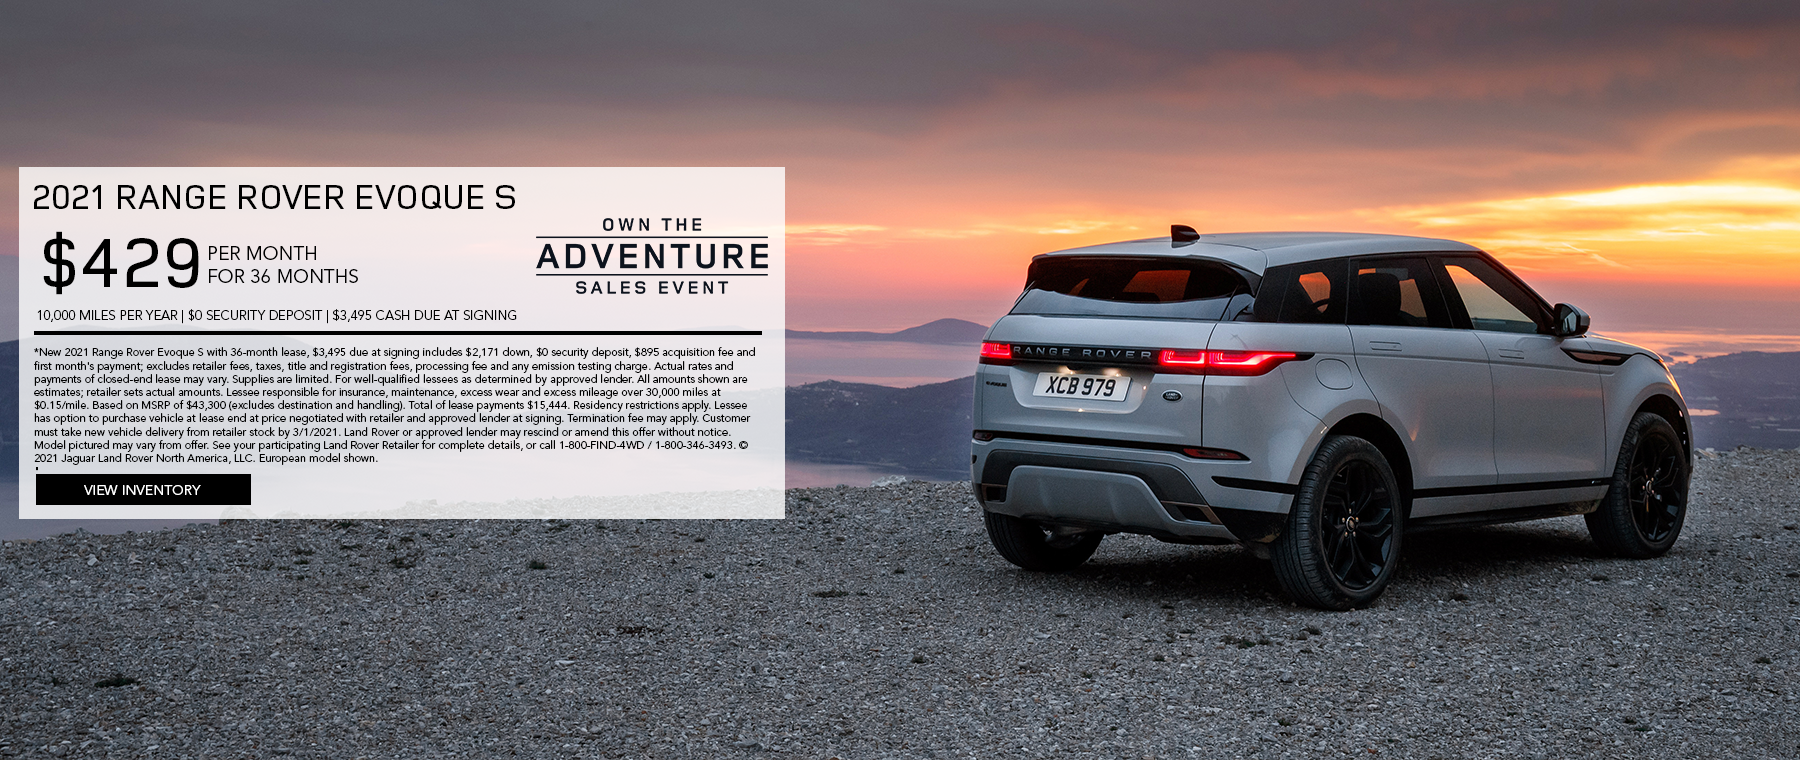 February 2021 Evoque UPDATED